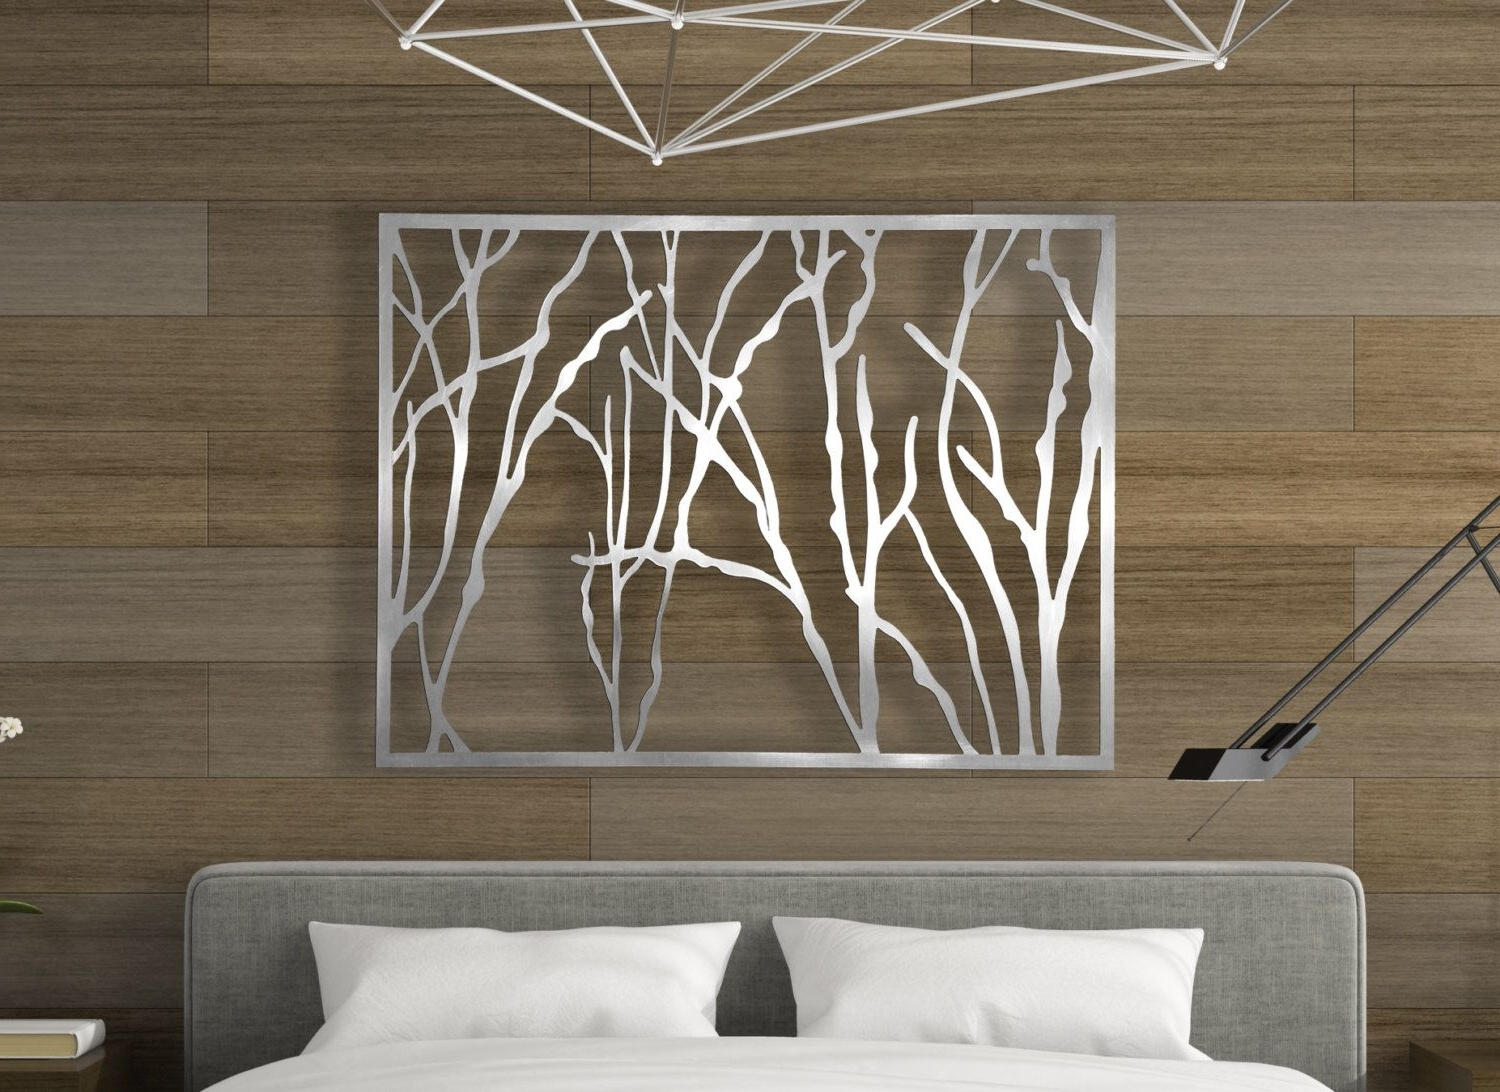 Decorative Wall Art In Well Liked Laser Cut Metal Decorative Wall Art Panel Sculpture For Home, Office (View 7 of 15)